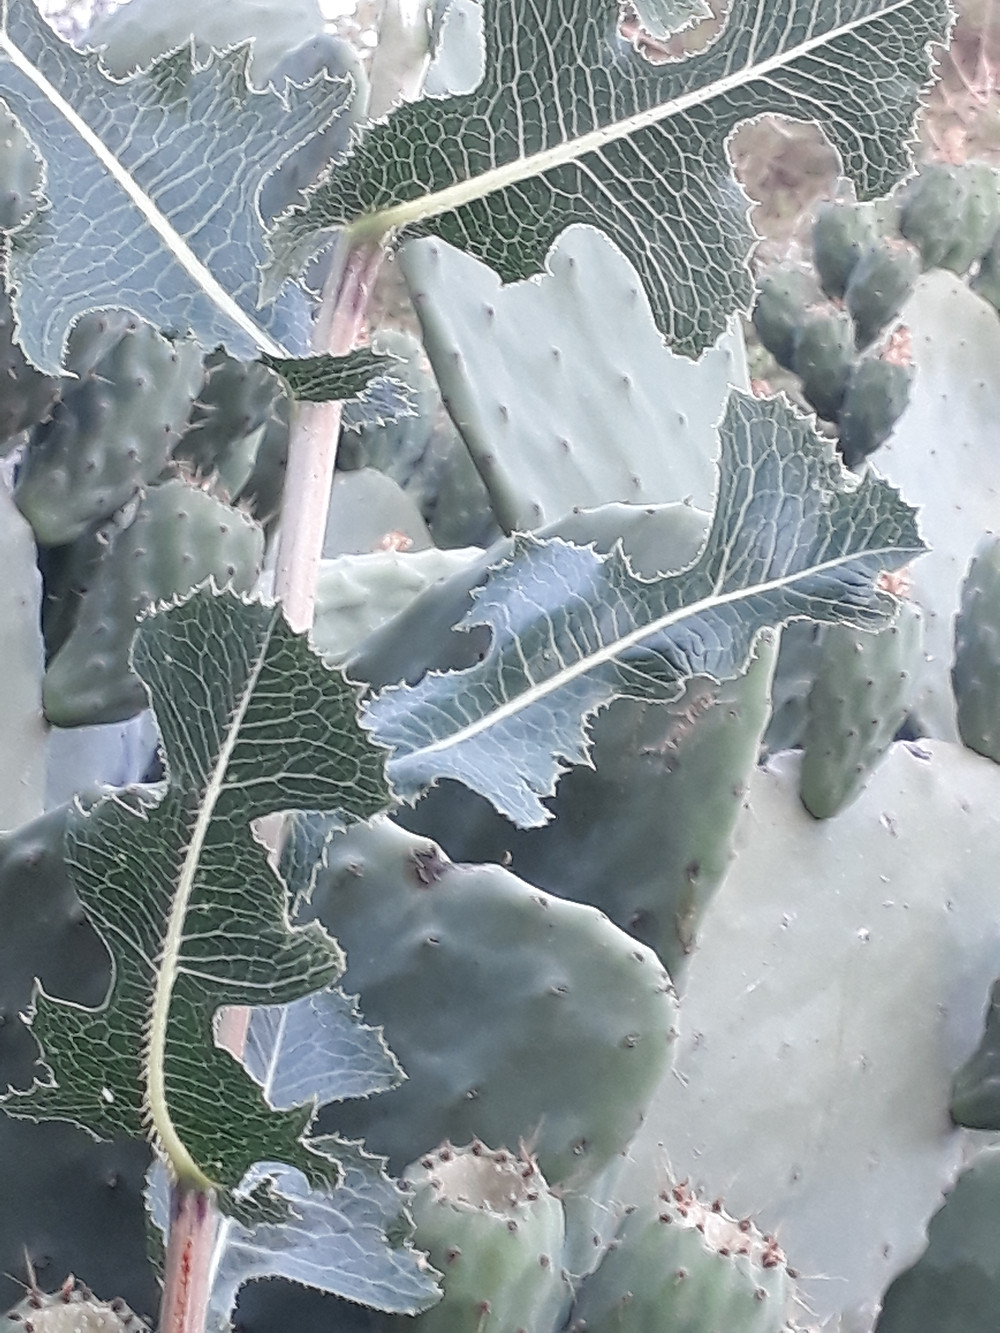 Green curly, spiny  thistle-type leaves with bright white veins. Background of green prickly pear pads and unripe green prickly pears with geometrically arrayed spines